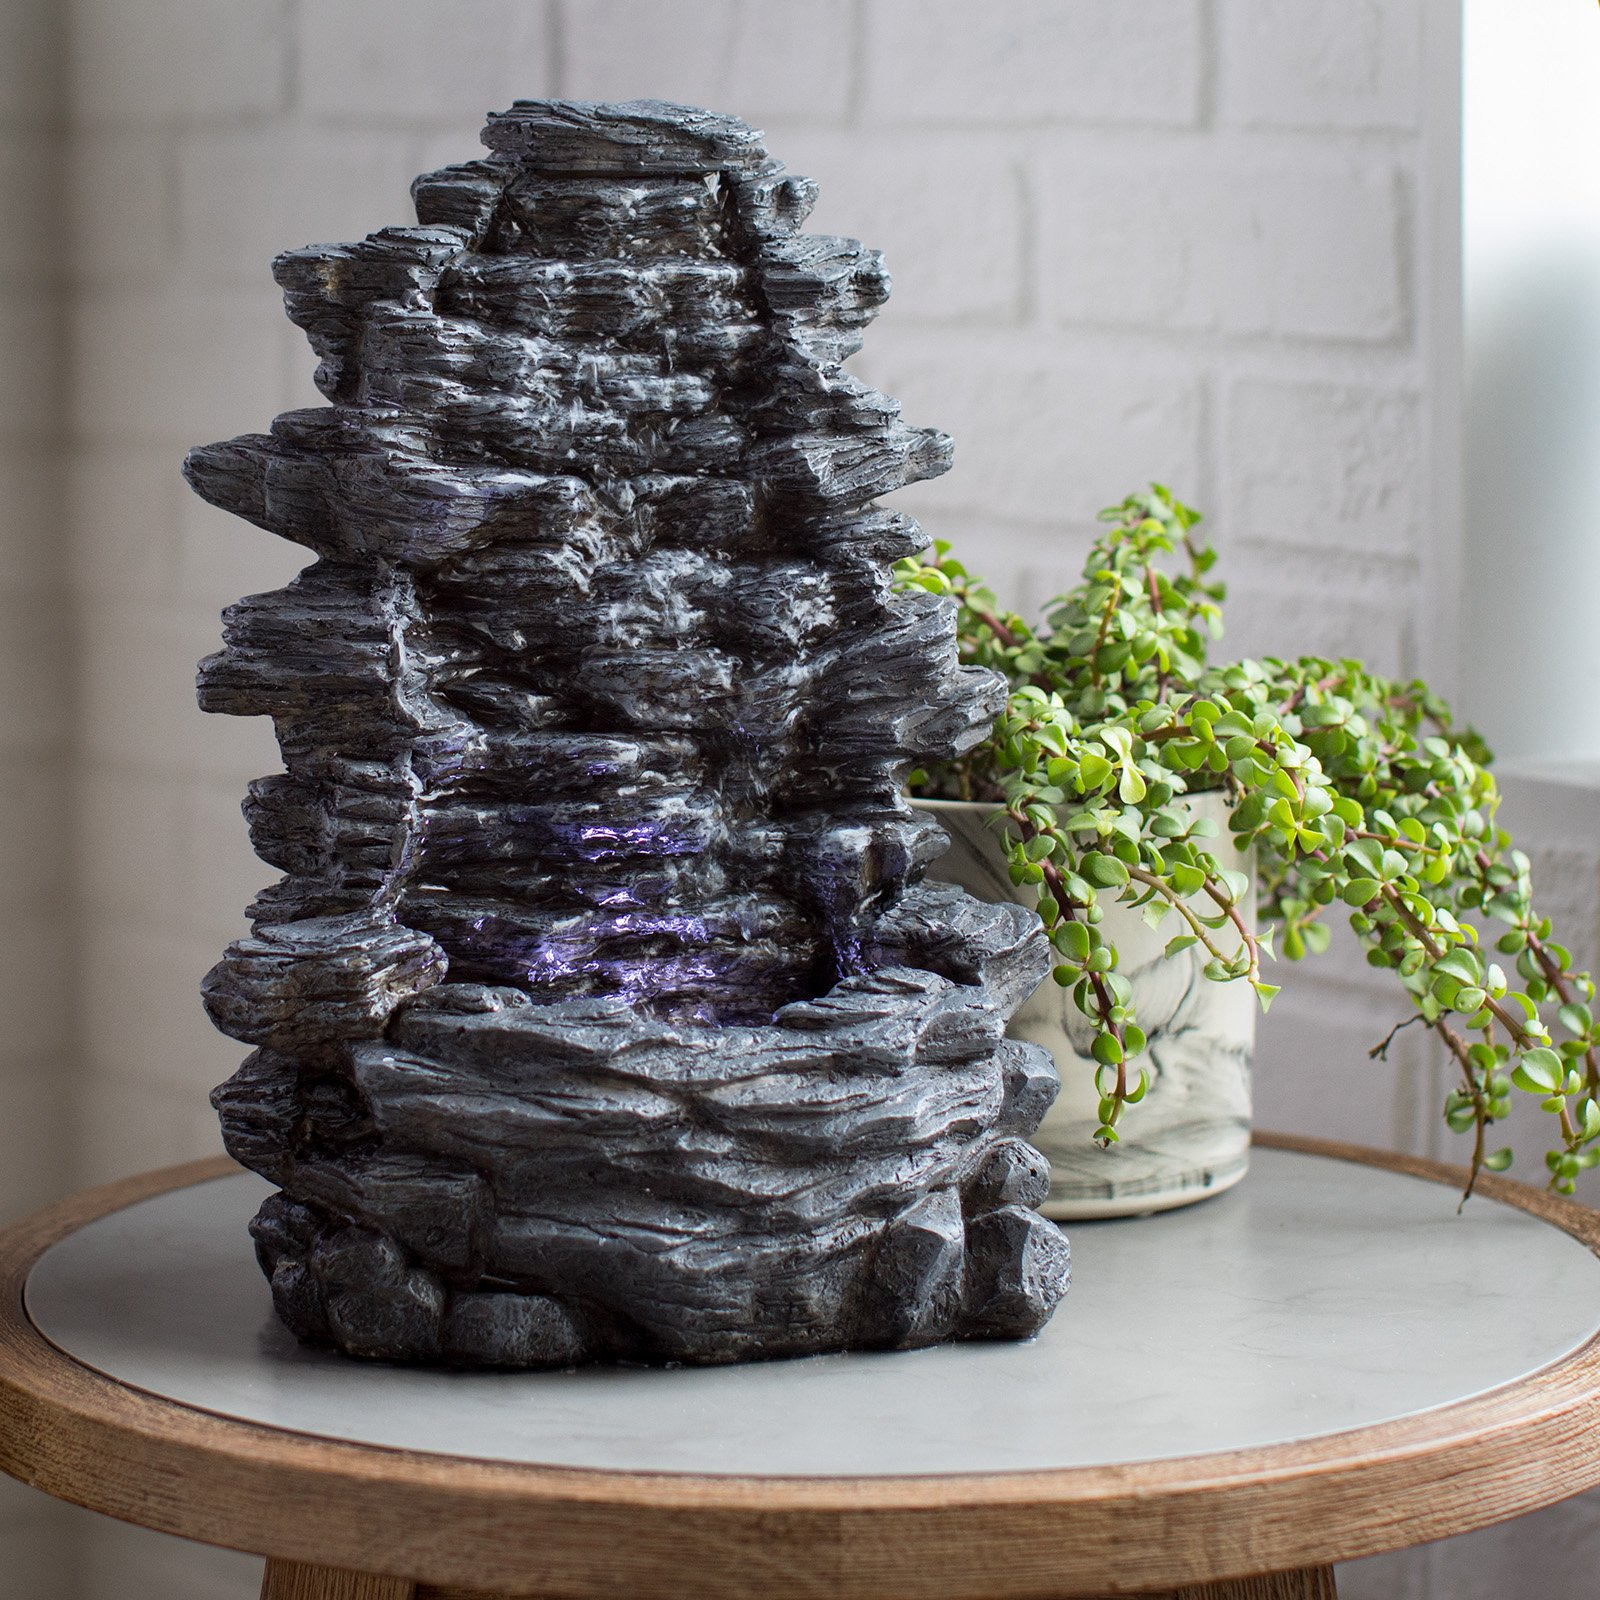 Belham Living Hudson Rock Table Top Fountain by